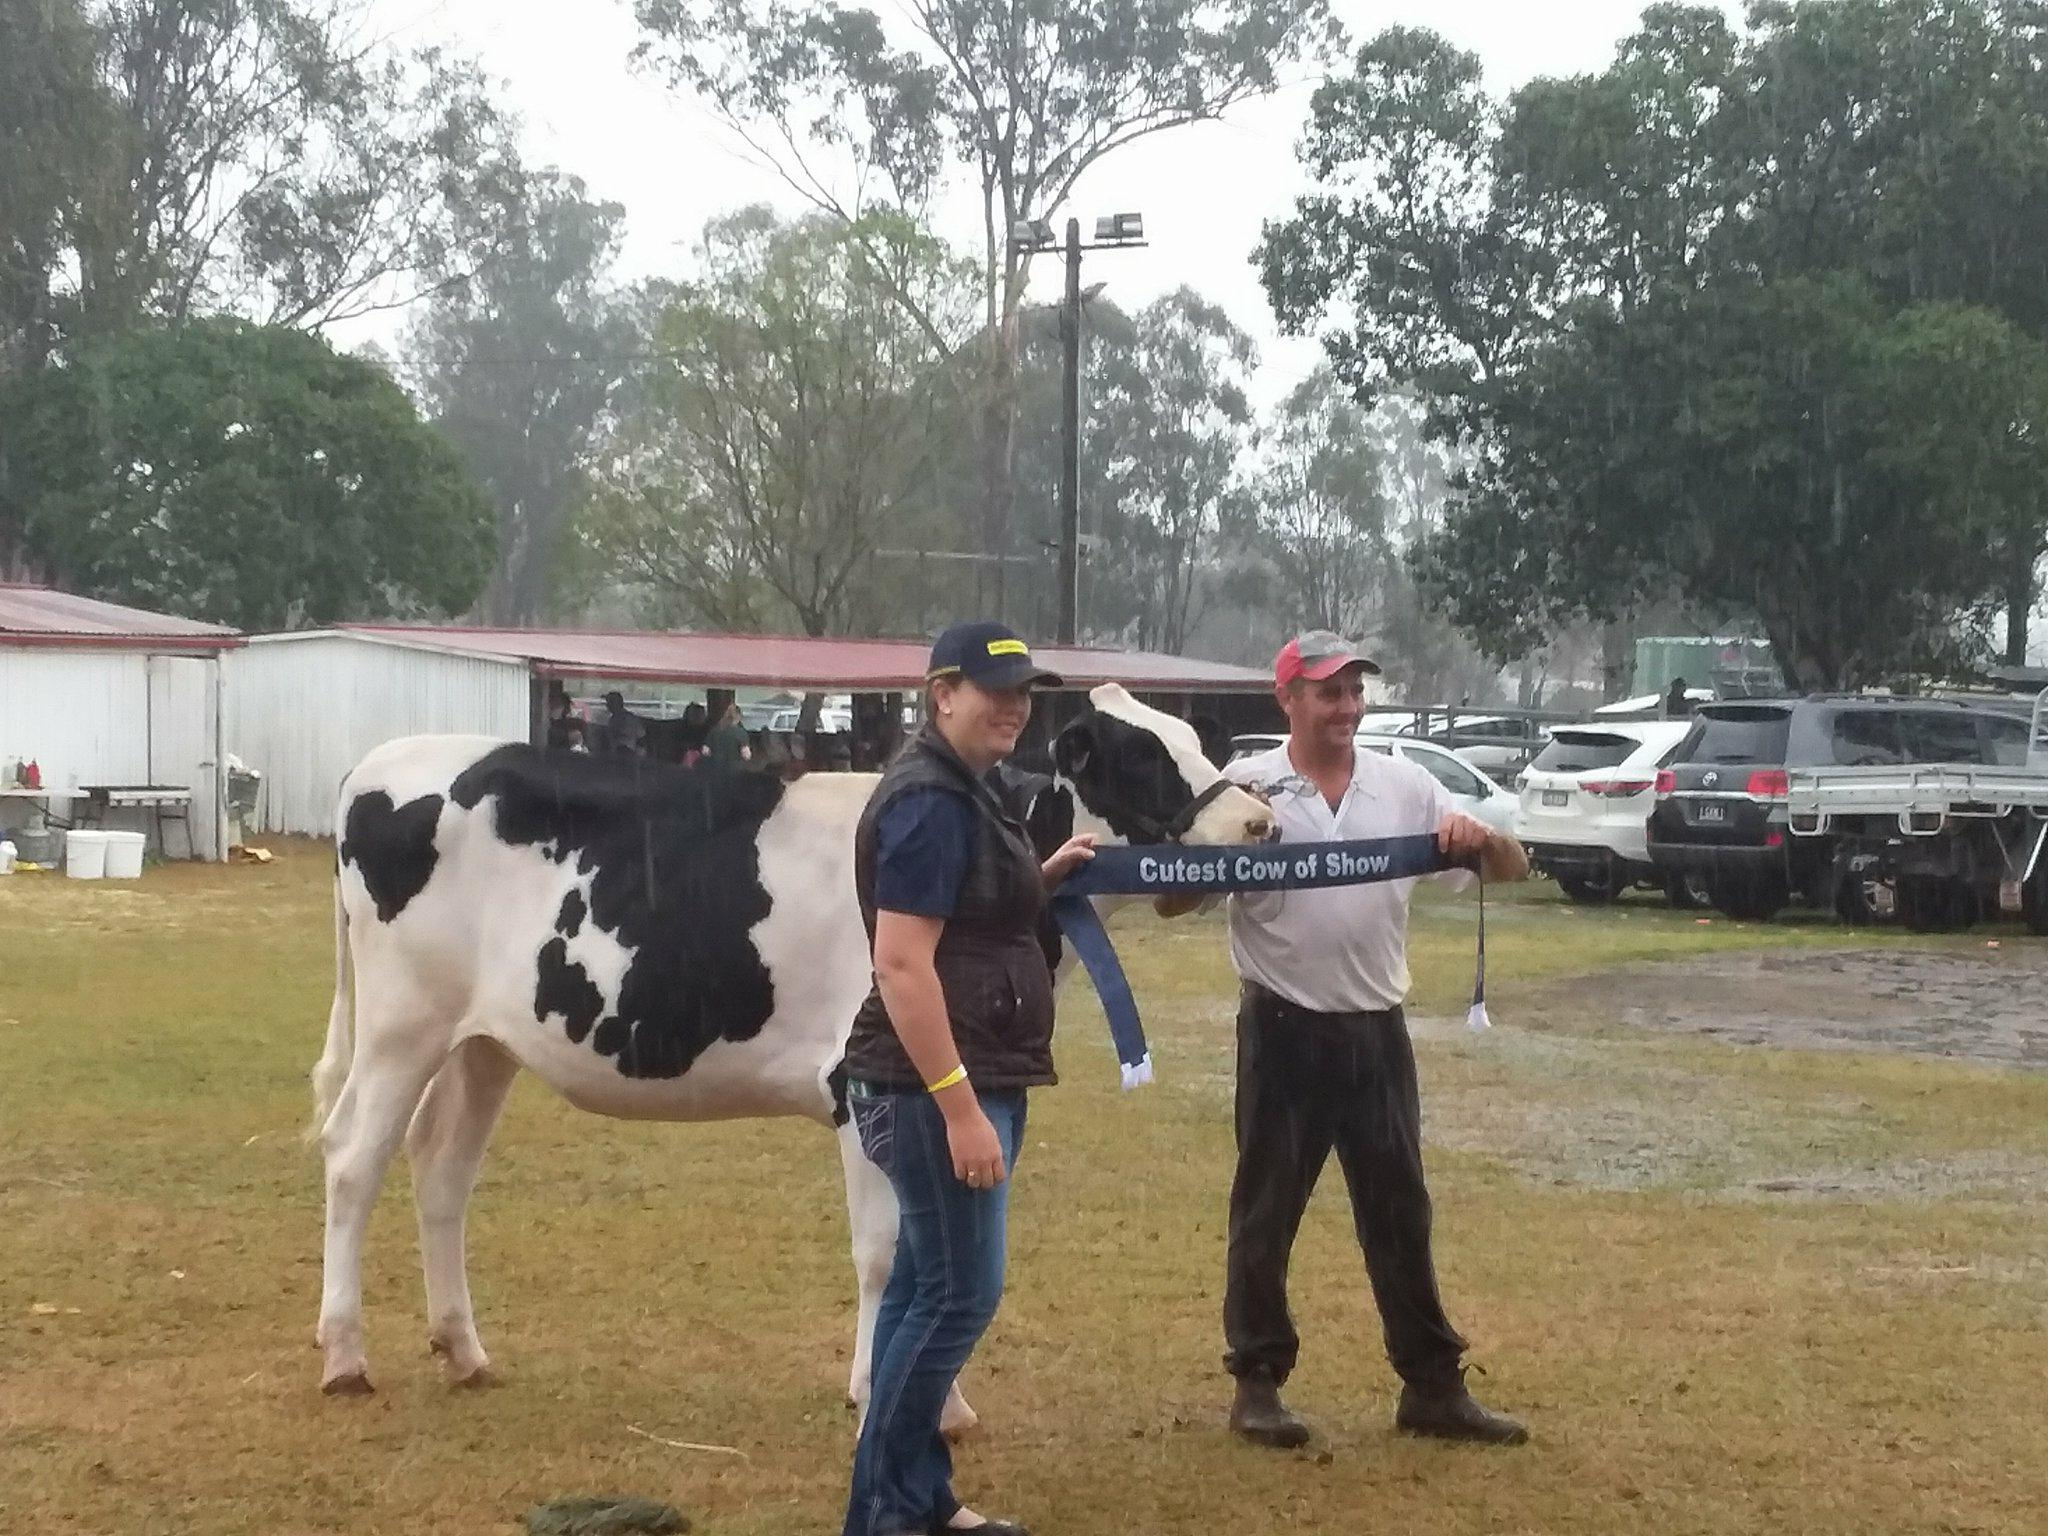 Congratulations to Glencrest Windbrook Supermodel and Rodney Teese for winning Cutest Cow in Show.